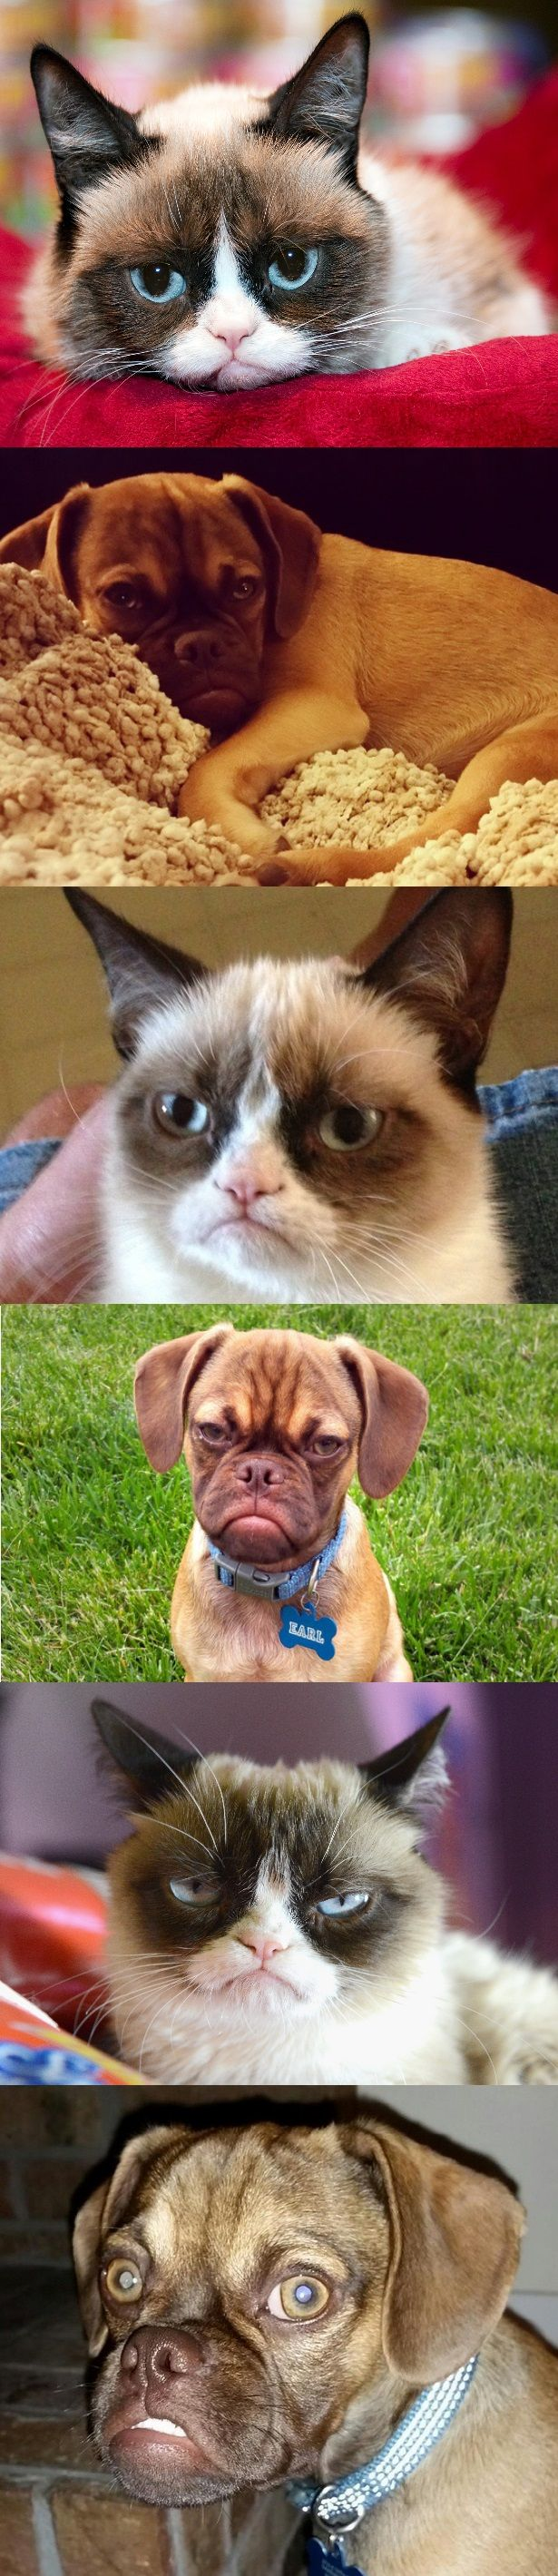 Grump off between Grumpy cat and Earl the grumpy dog